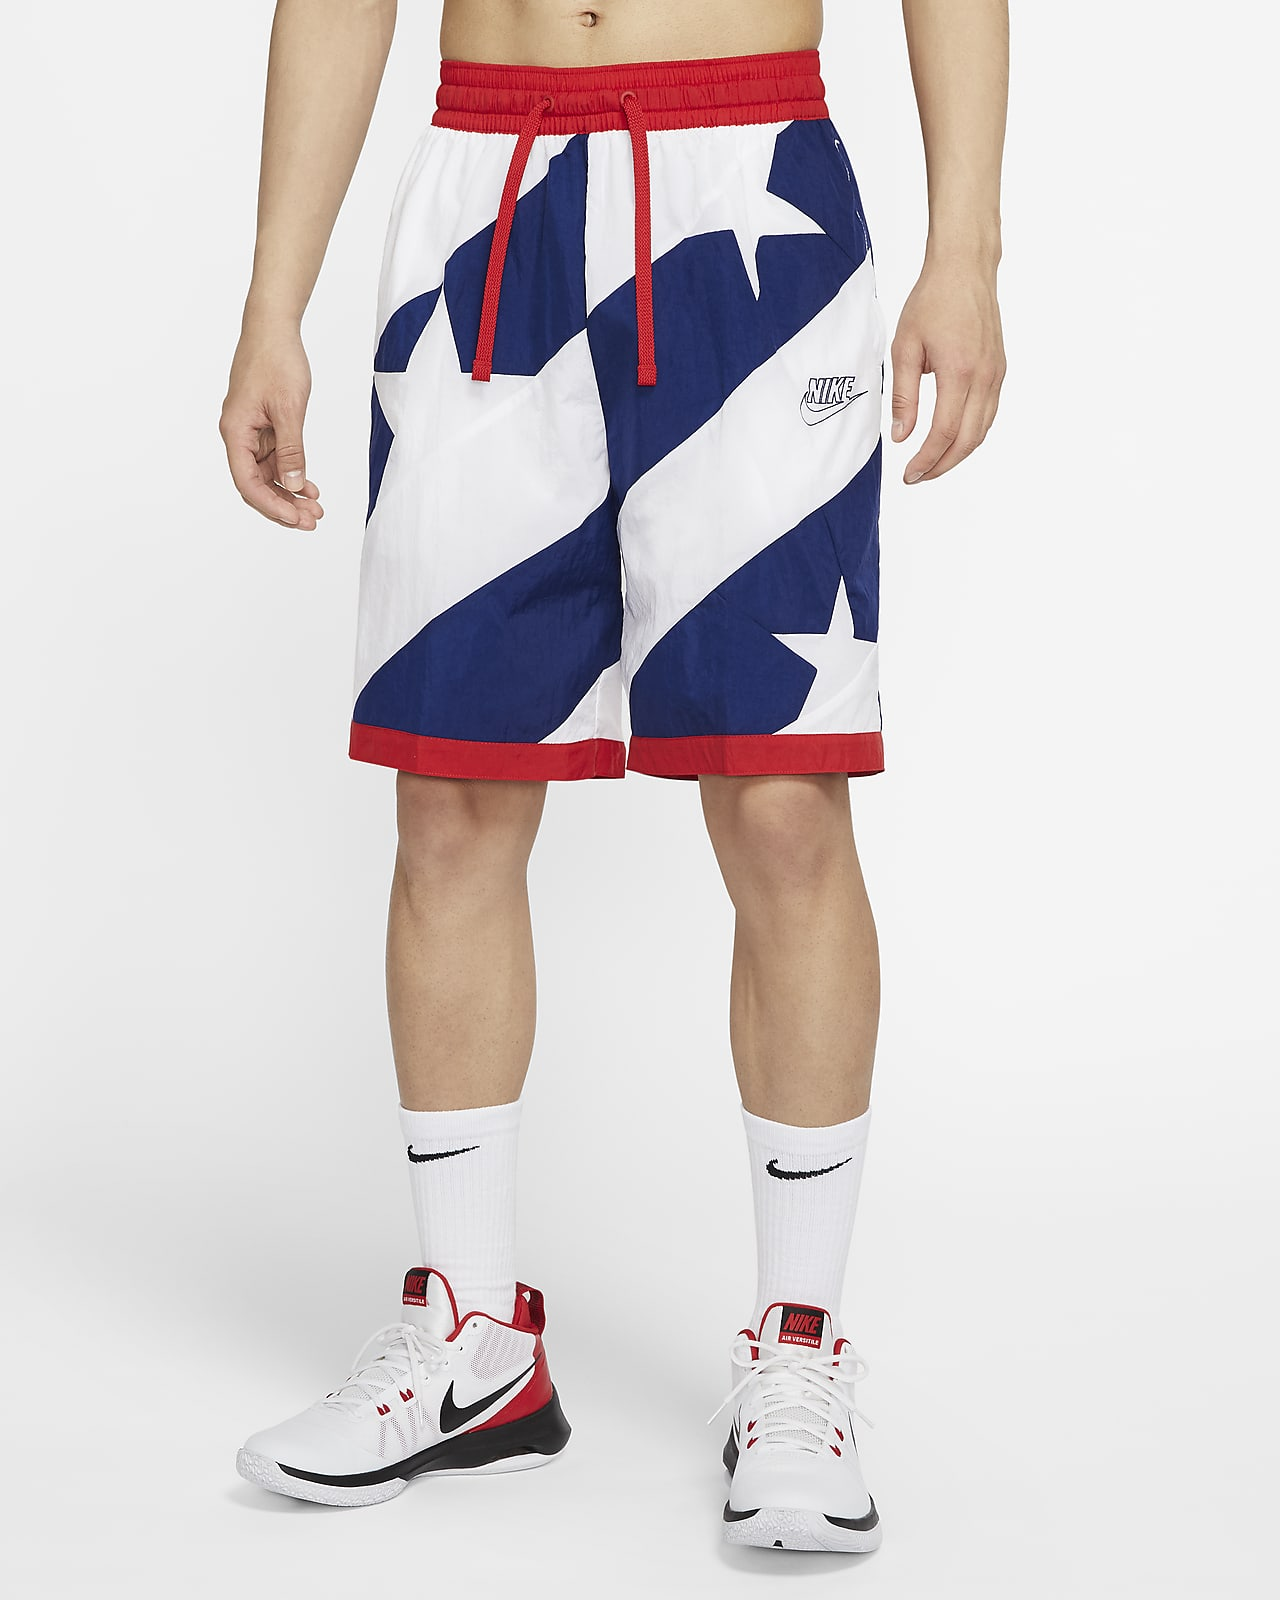 Nike Dri-FIT Throwback Herren-Basketballshorts